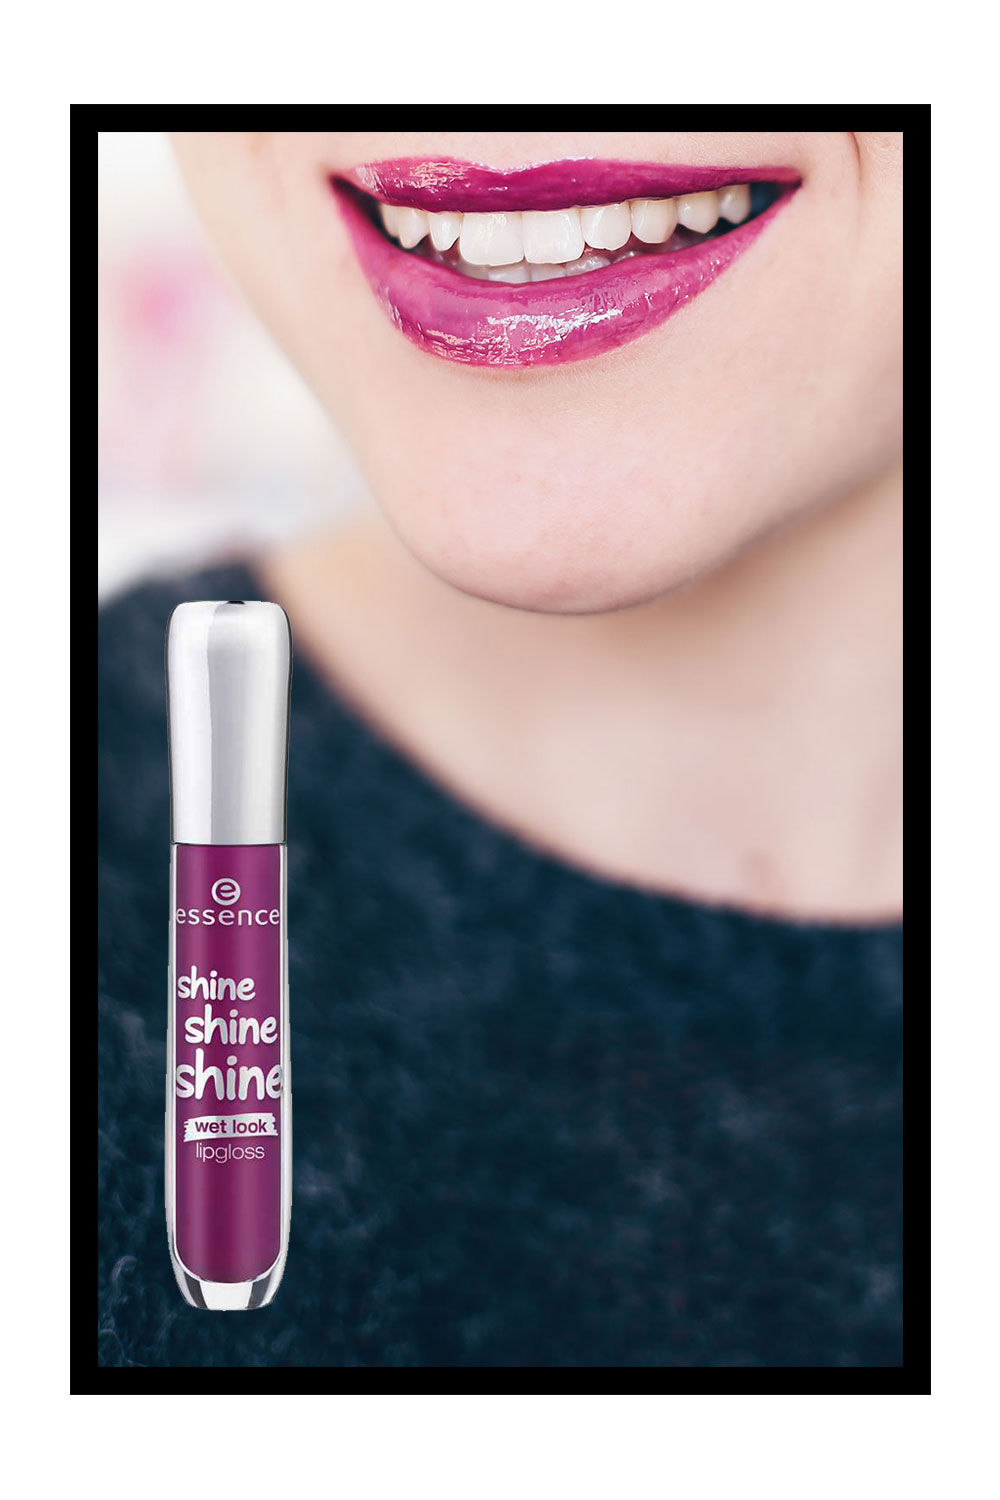 essence shine shine shine lipgloss, Review, Erfahrungsbericht, Beautyblog, Produkttest, Beauty Magazin, whoismocca.com